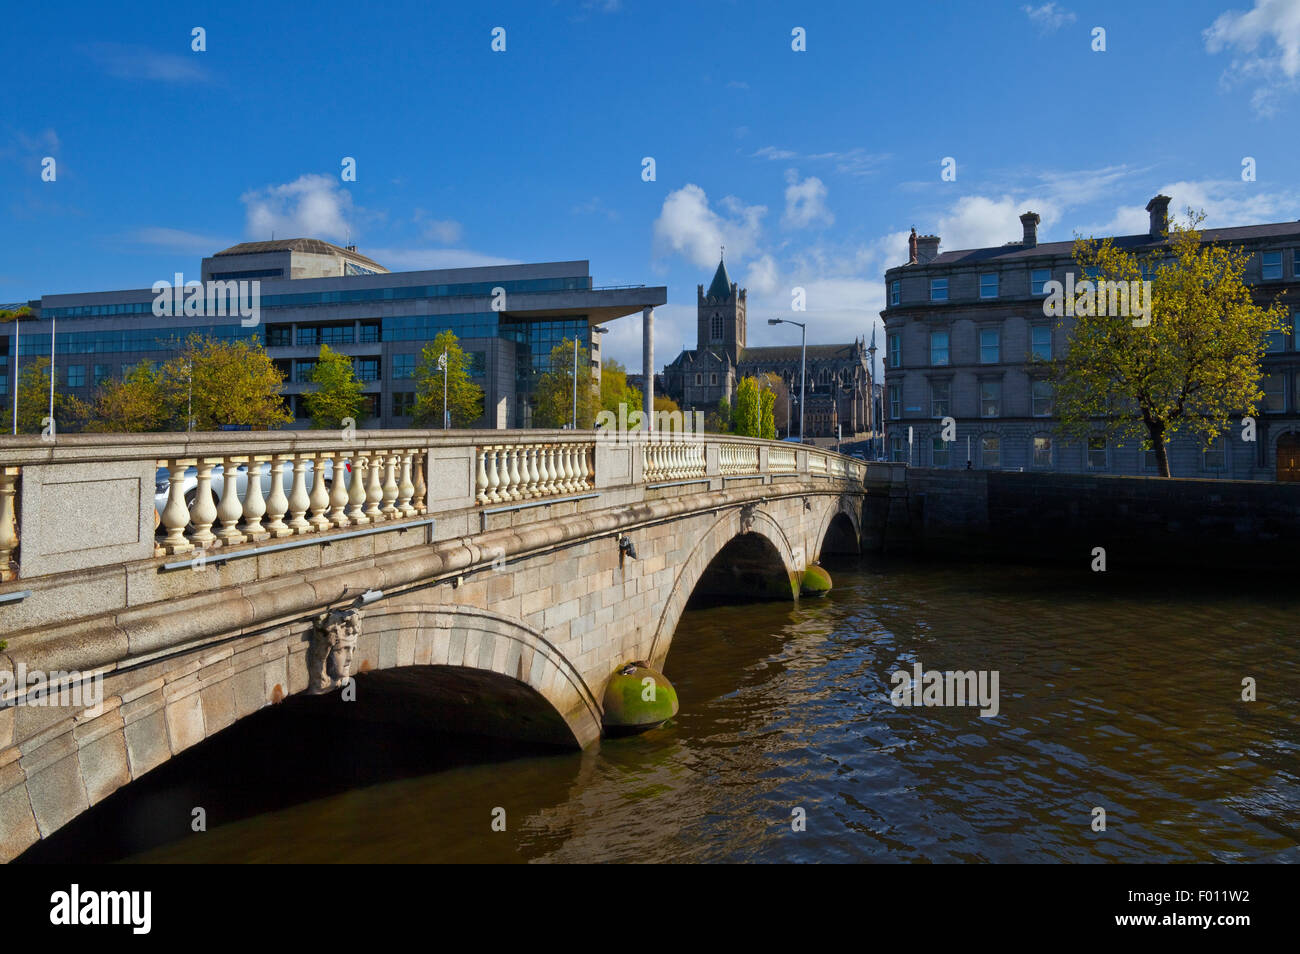 O'Donovan Rossa Bridge (1813) with Christchurch Cathedral and  Dublin Corporation Civic Offices on Wood Quay. - Stock Image